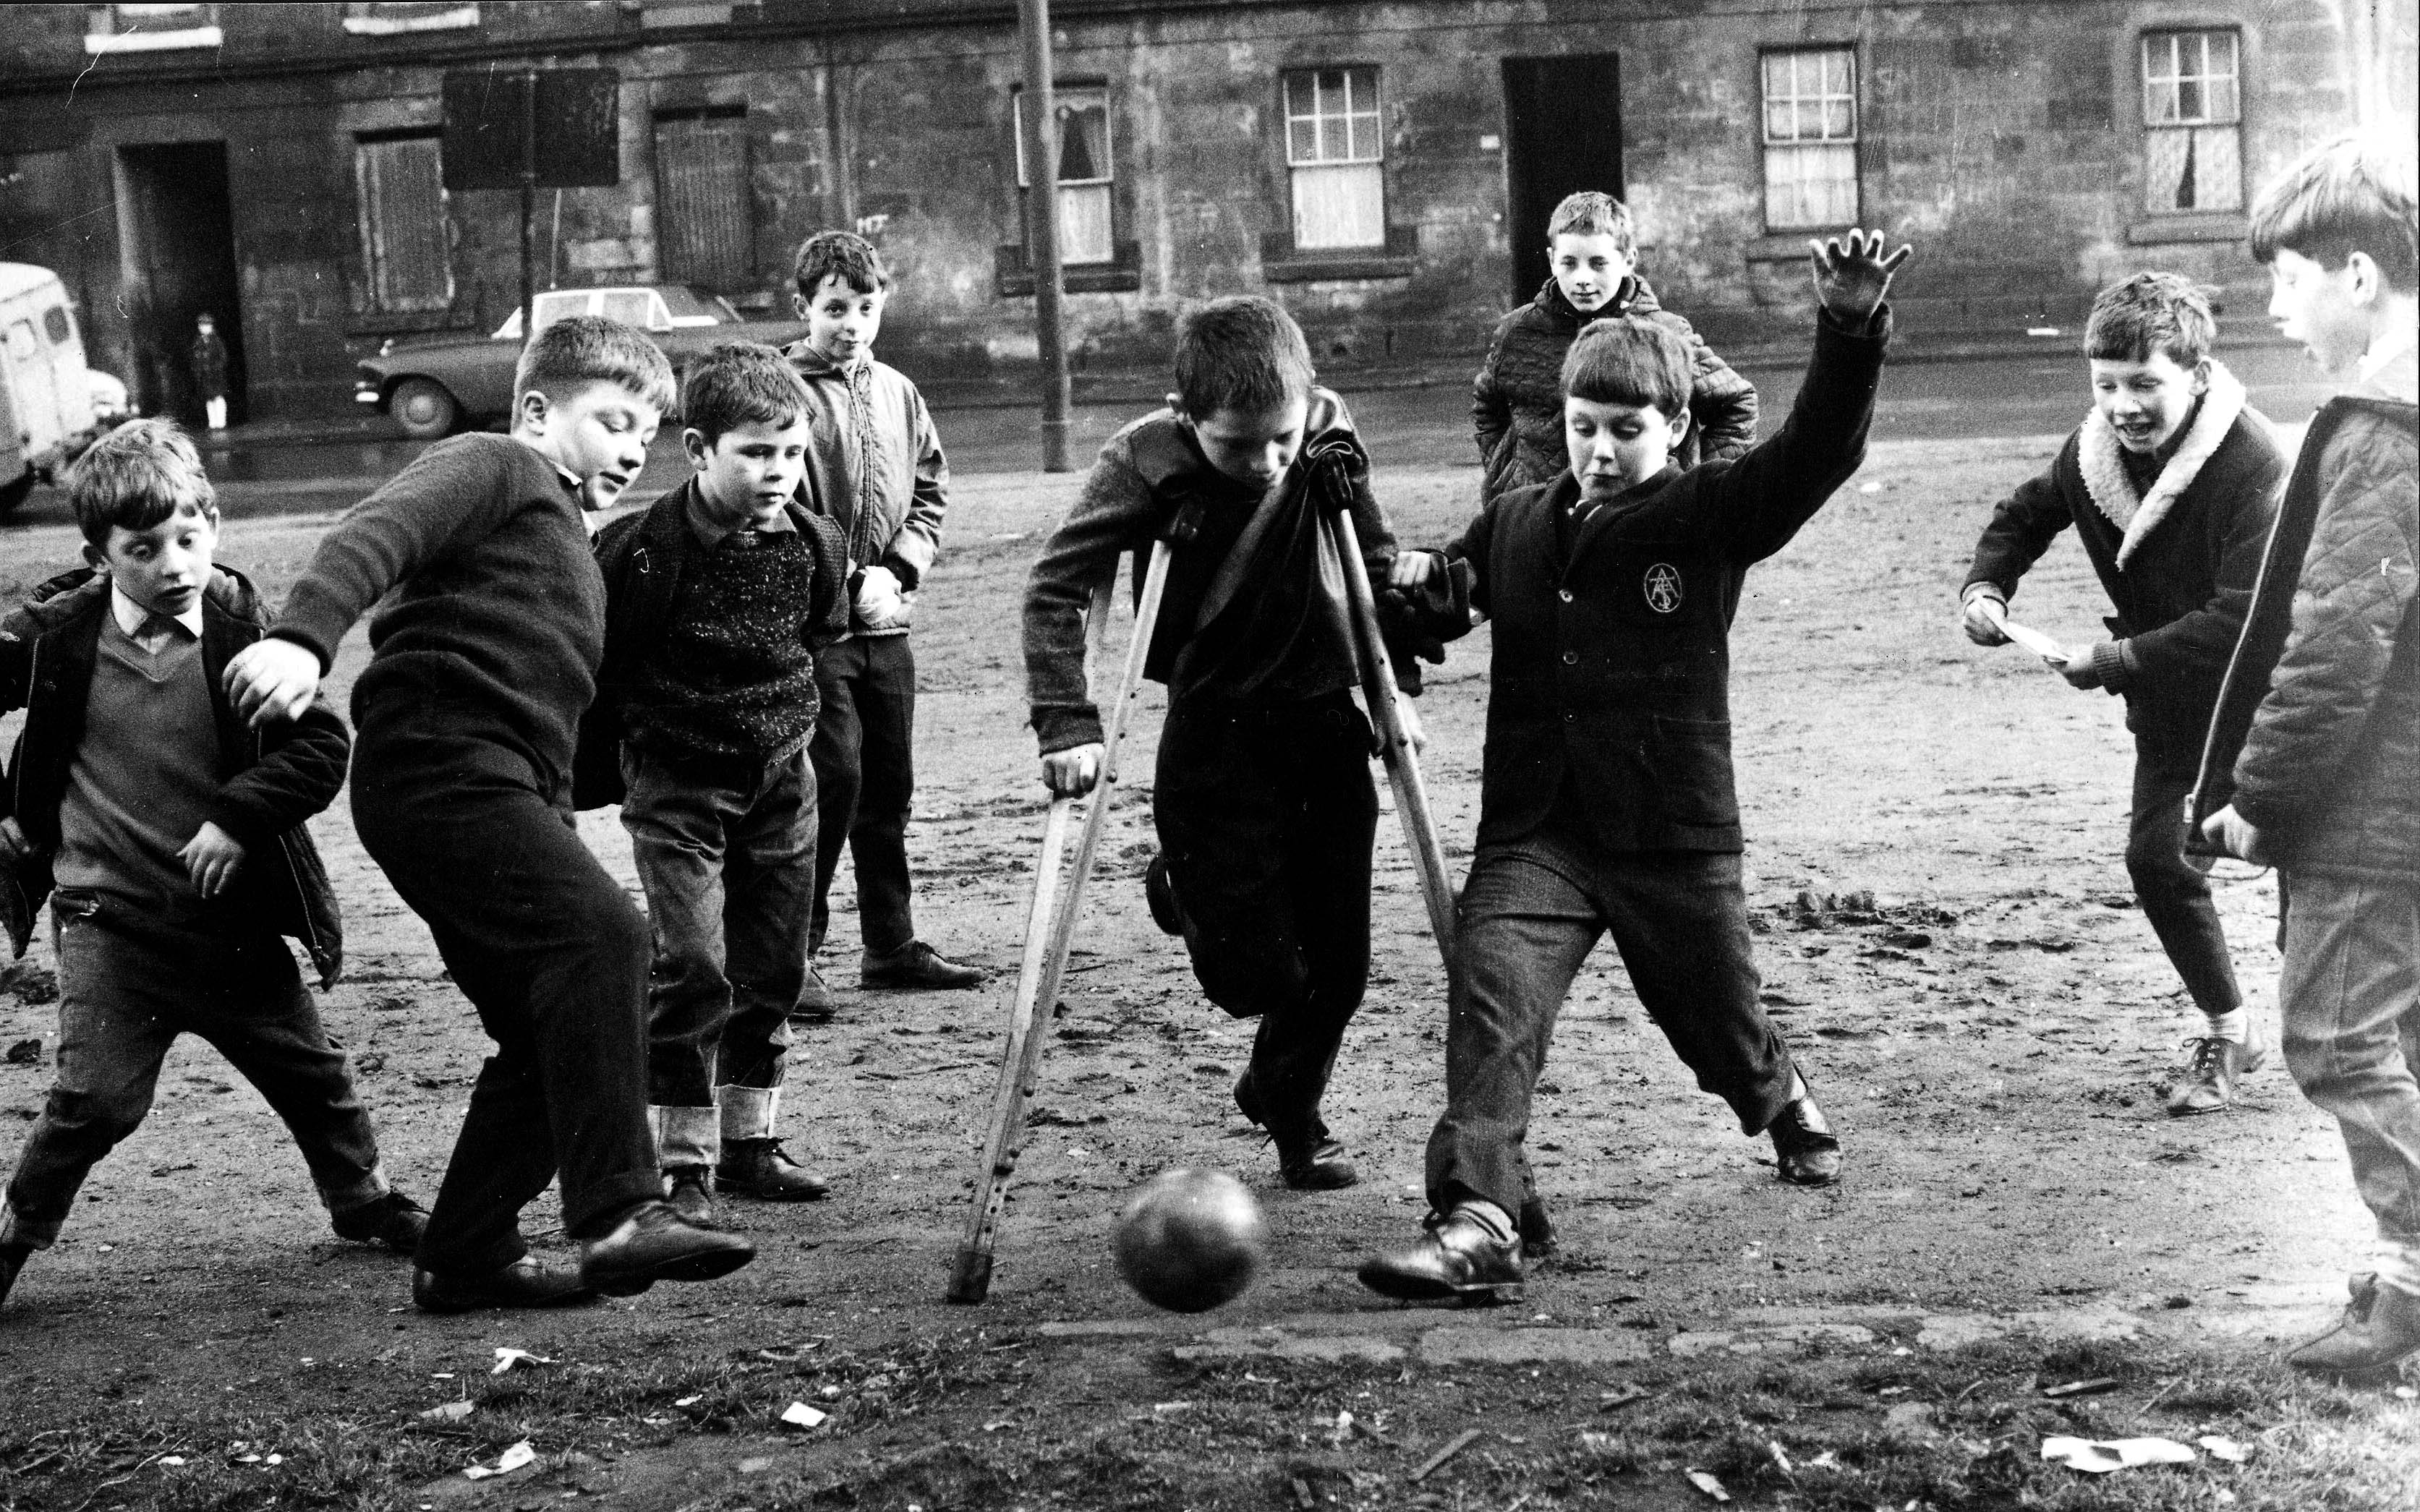 Children kick a football around in the Gorbals, Glasgow in 1967 (Popperfoto/Getty Images)